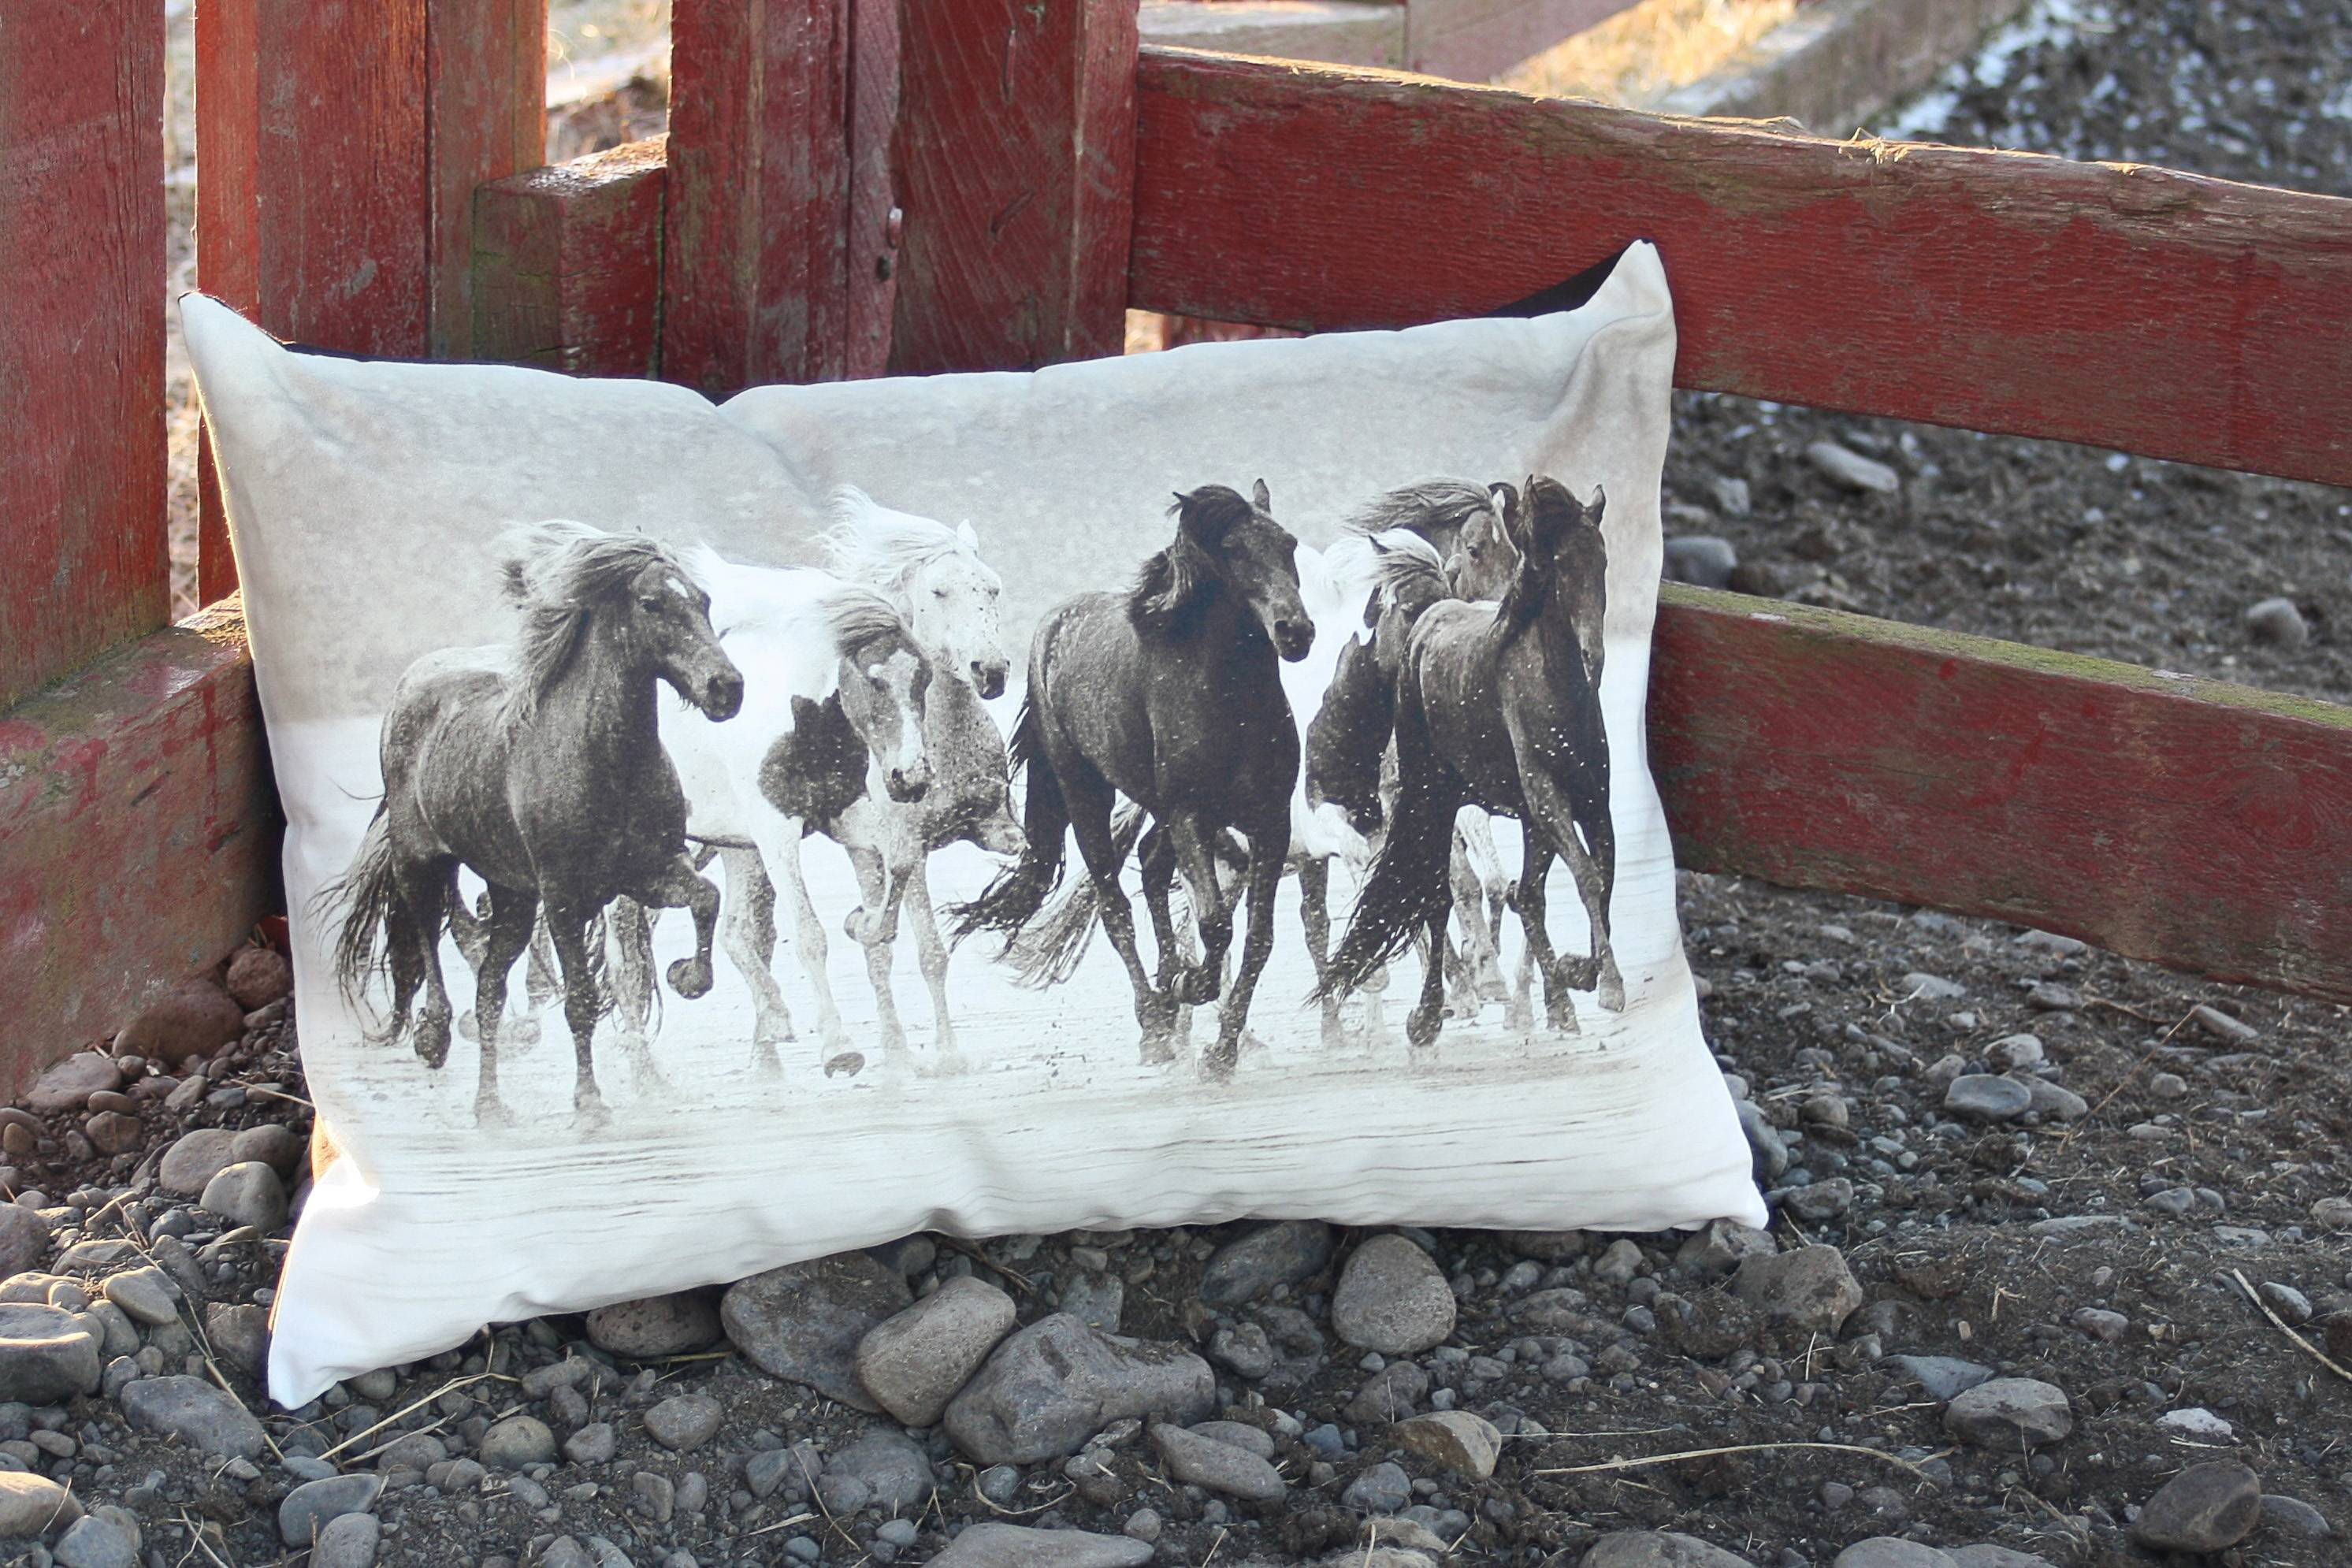 This photo print on a pillow shows an evocative image of Icelandic horses.